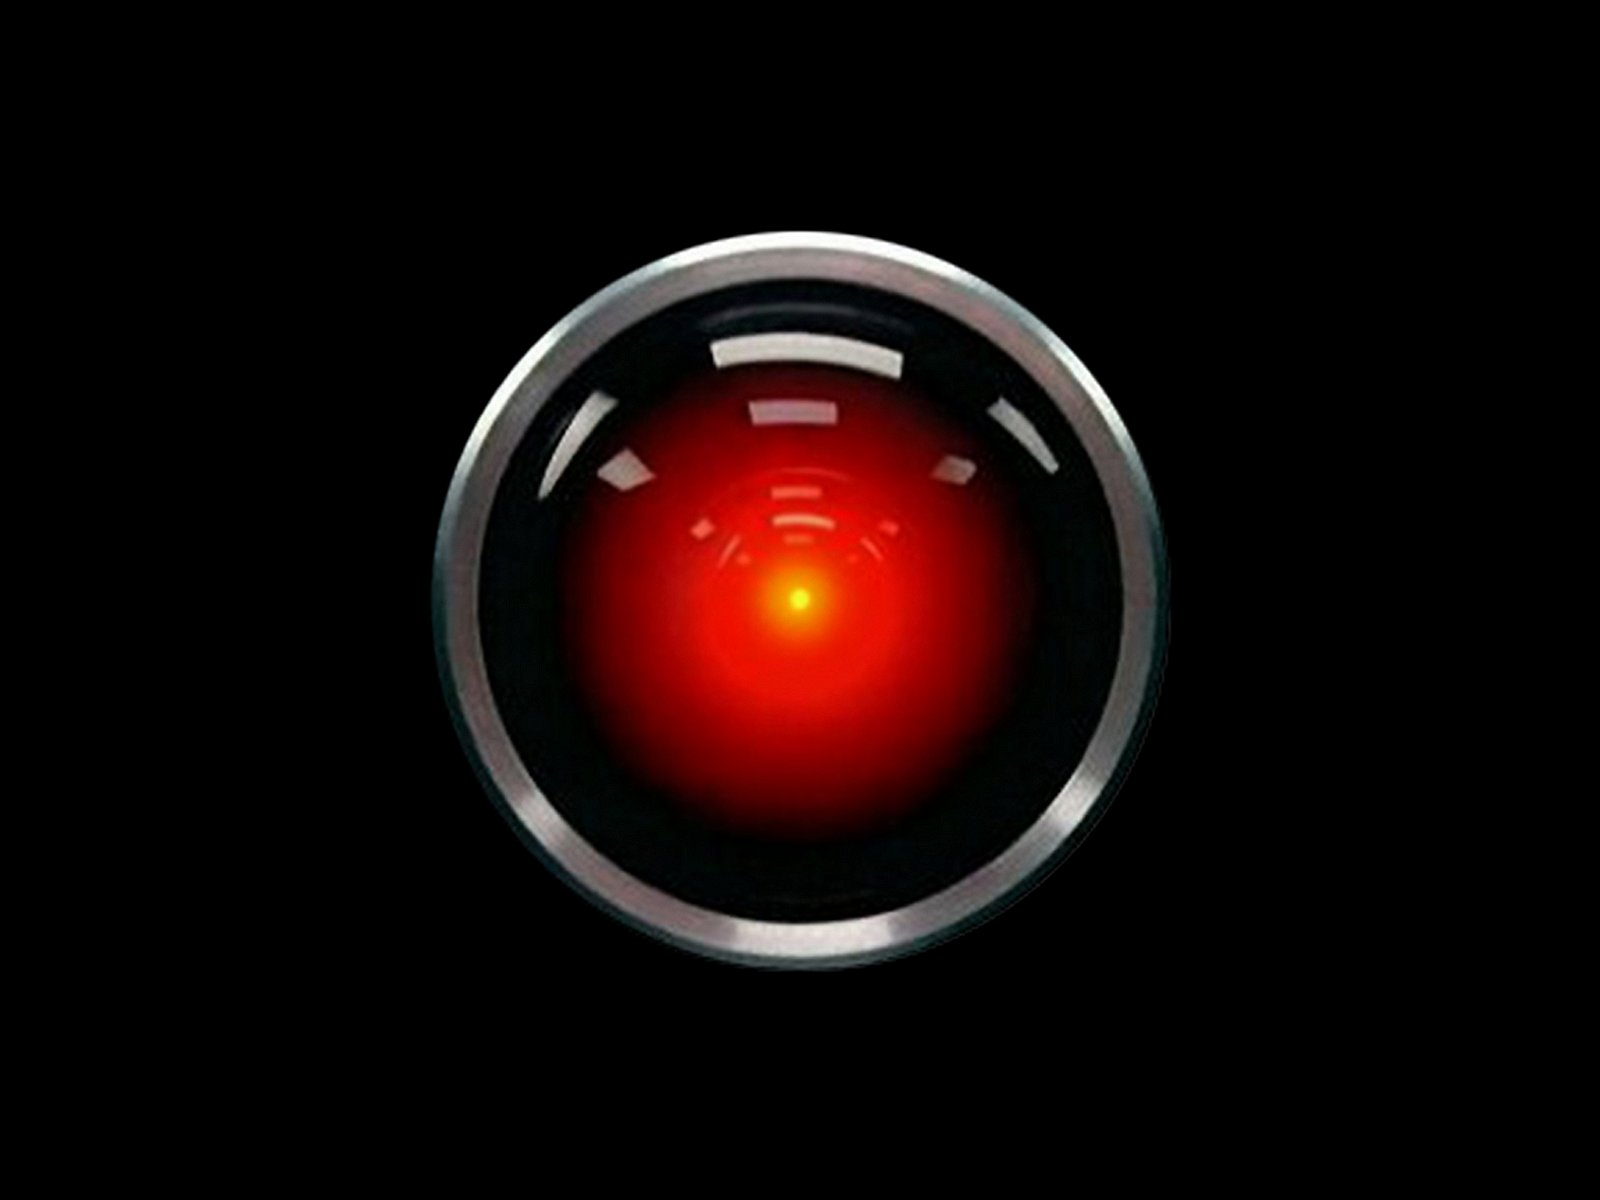 1600x1200 > 2001: A Space Odyssey Wallpapers